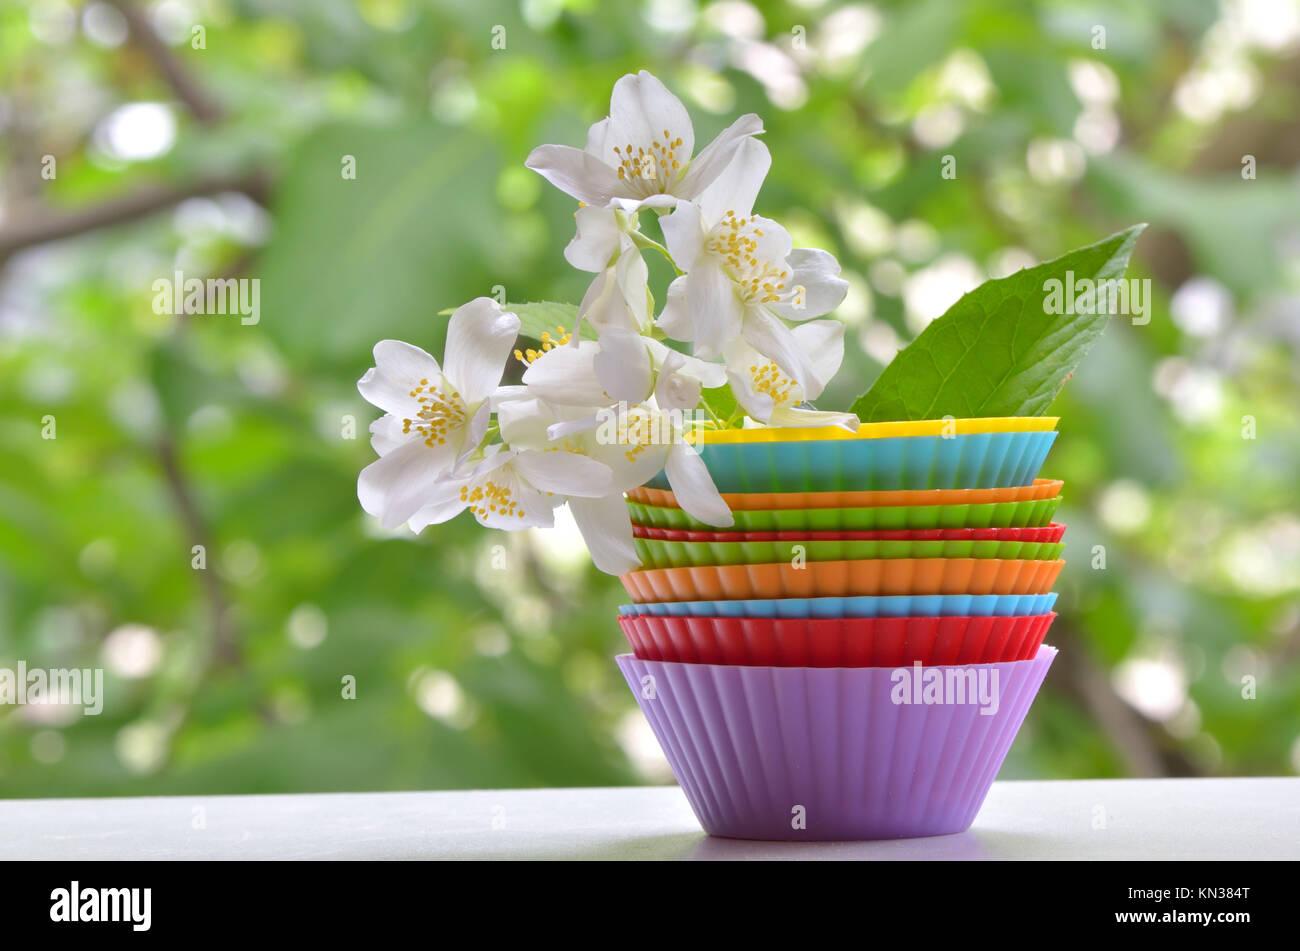 Types Of Muffins With Jasmine Flower Shoot On Natural Background